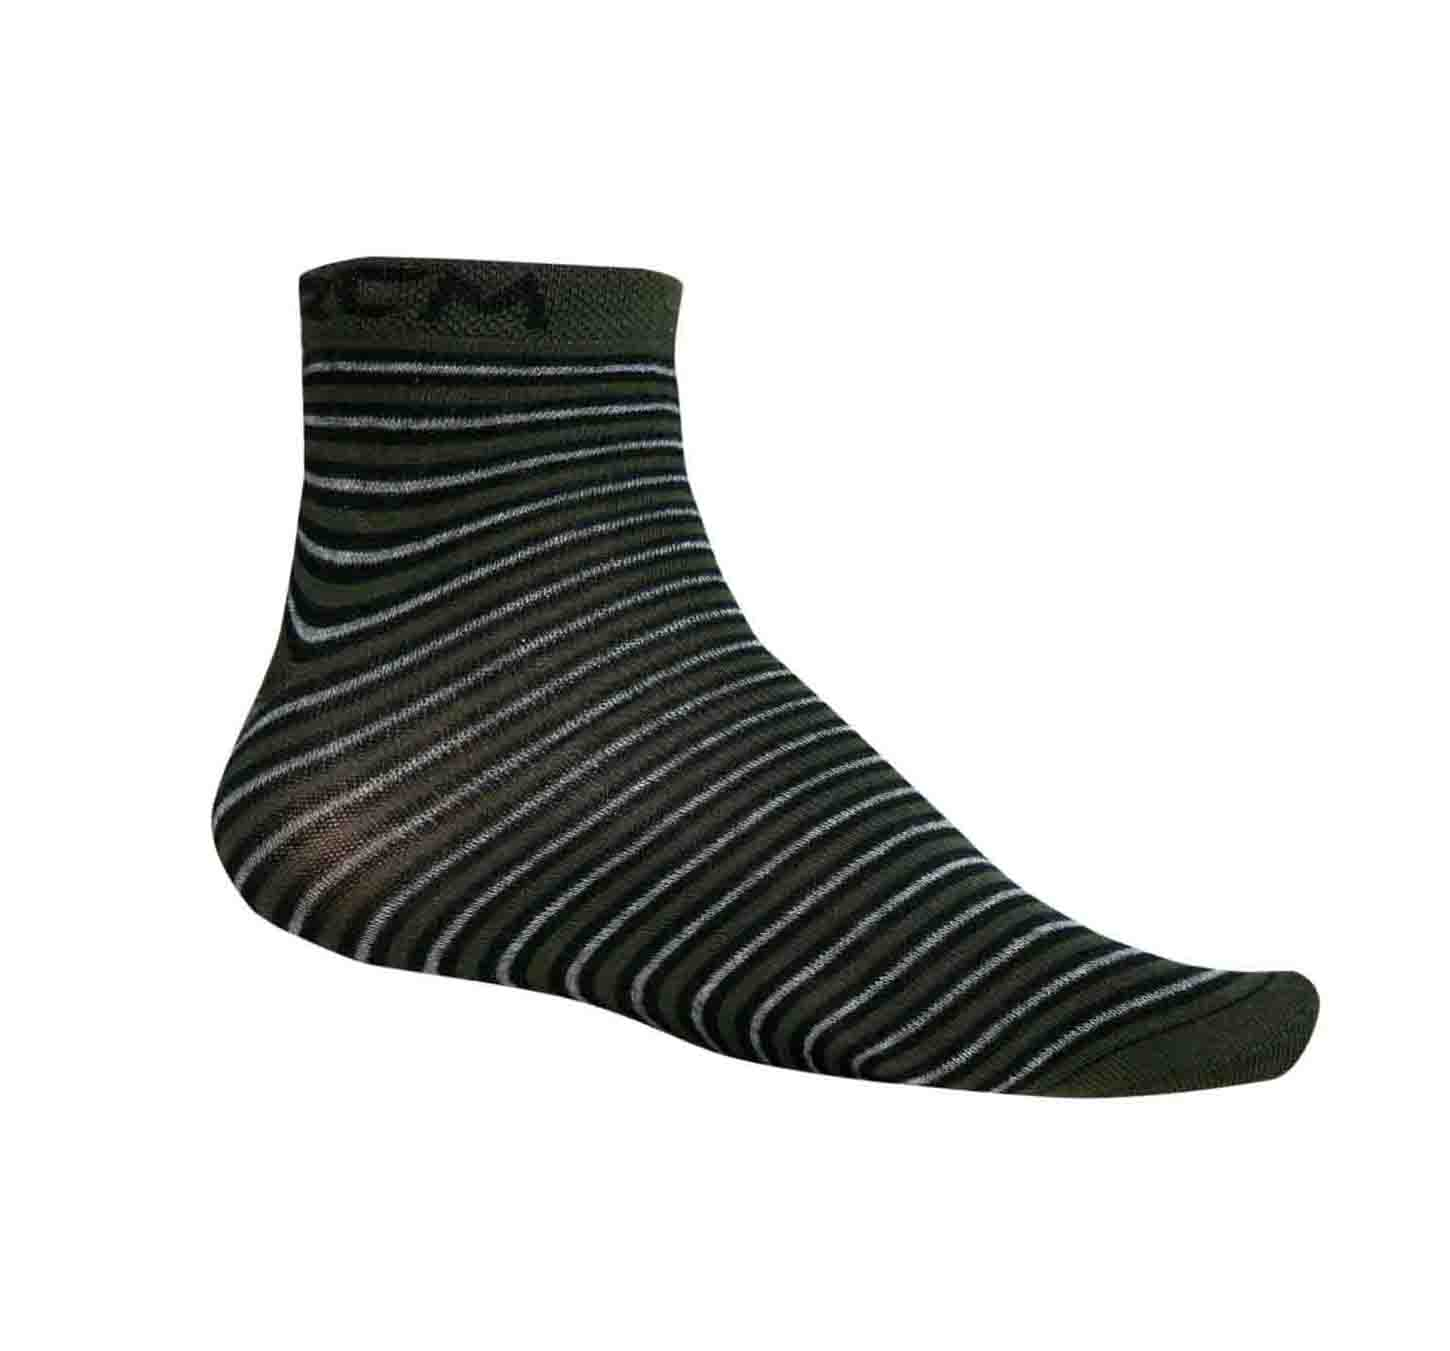 FOXY JAN 1-D NO 4-MEN FORMAL STRETCHABLE SOCKS